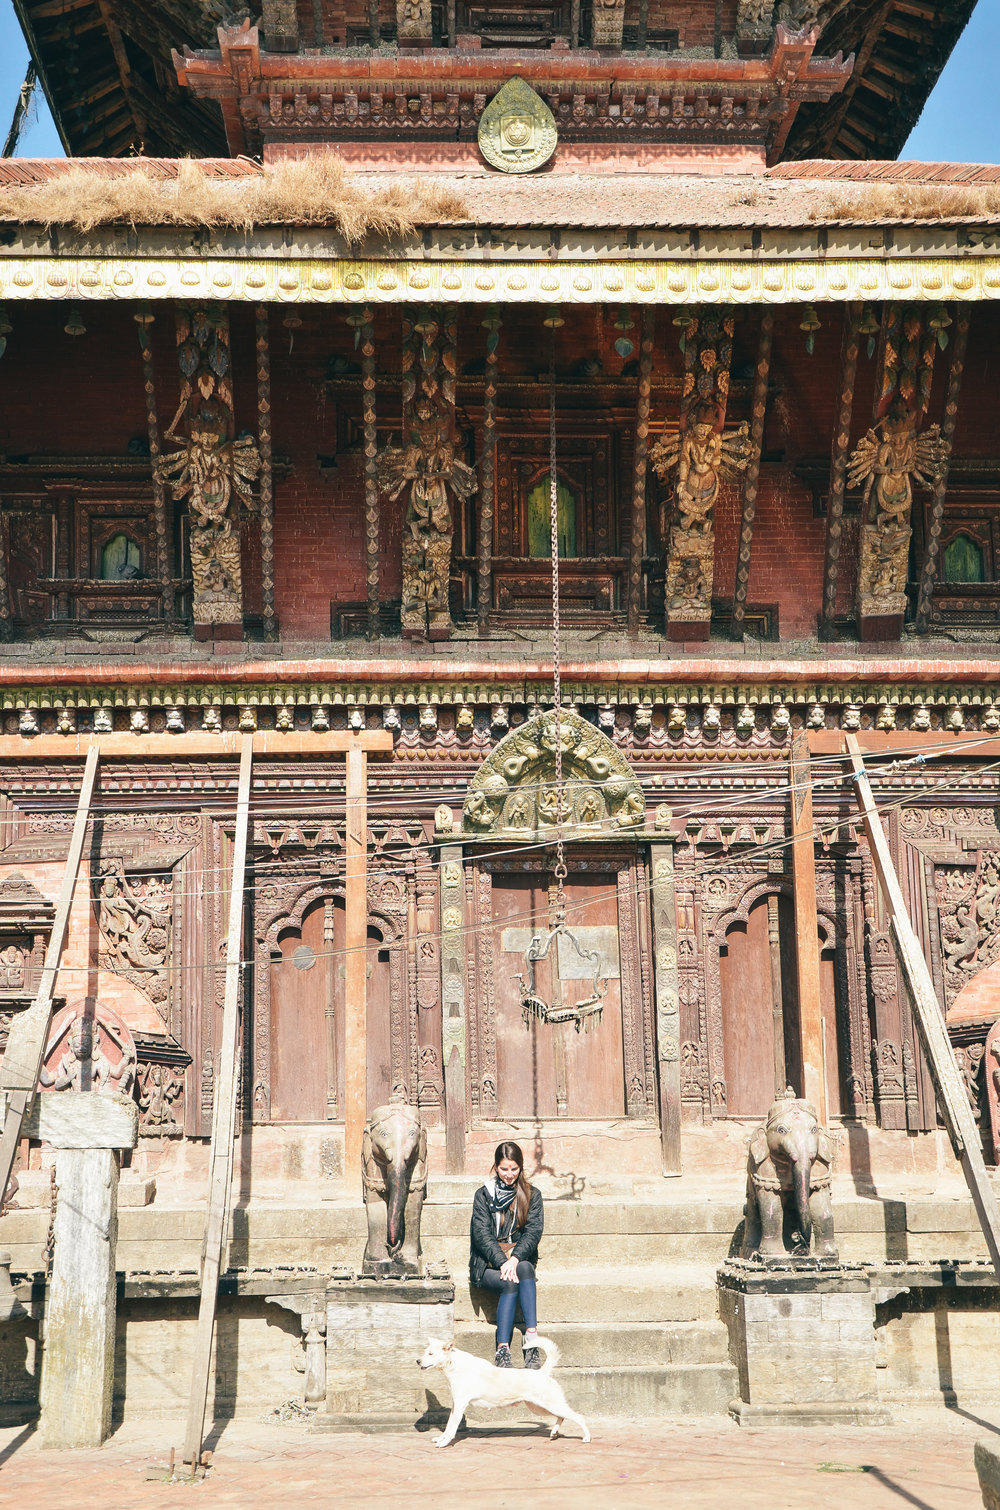 10-things-to-know-kathmandu-nepal-lifeonpine_DSC_0638.jpg